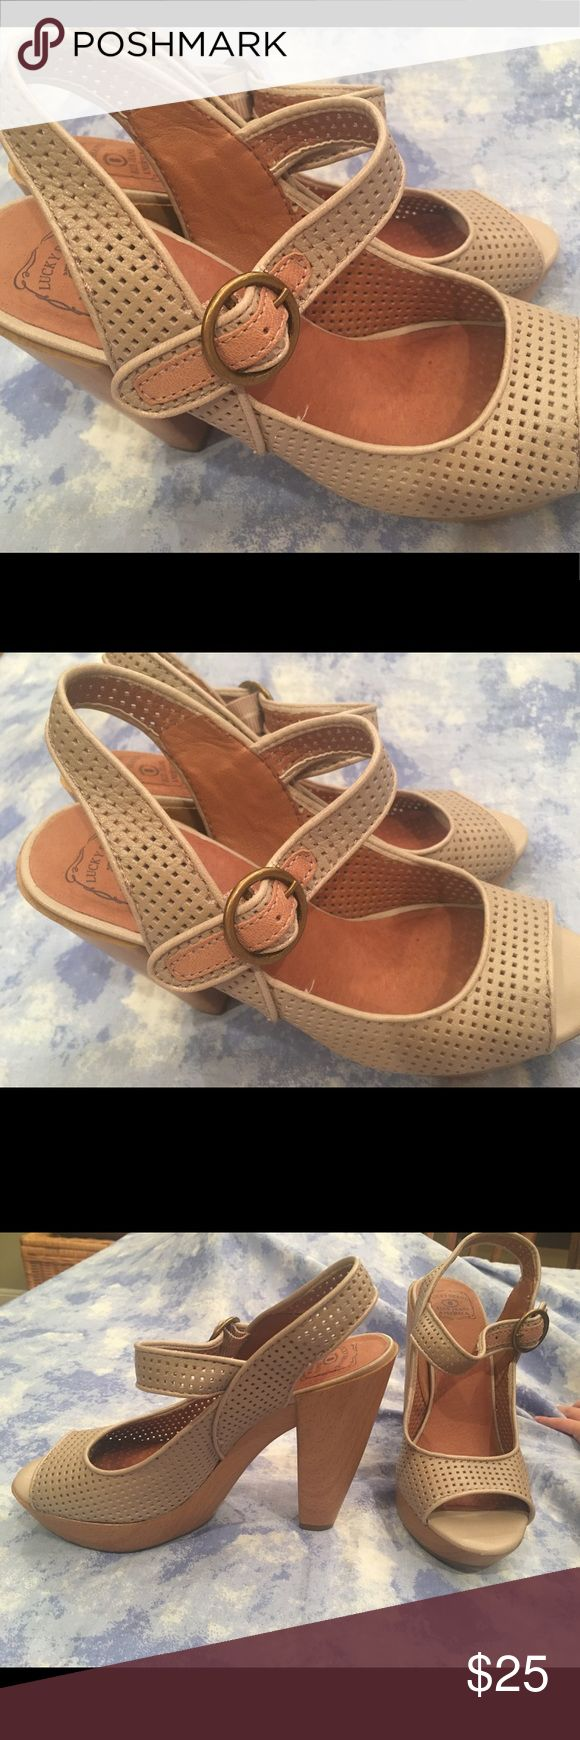 """Lucky Brand size 8.5 Leather open toe shoes Lucky Brand size 8.5 Leather open toe heels. Love these but are a bit too small for me. 5"""" heel 1"""" platform. 👠👠 Like new. Lucky Brand Shoes Heels"""